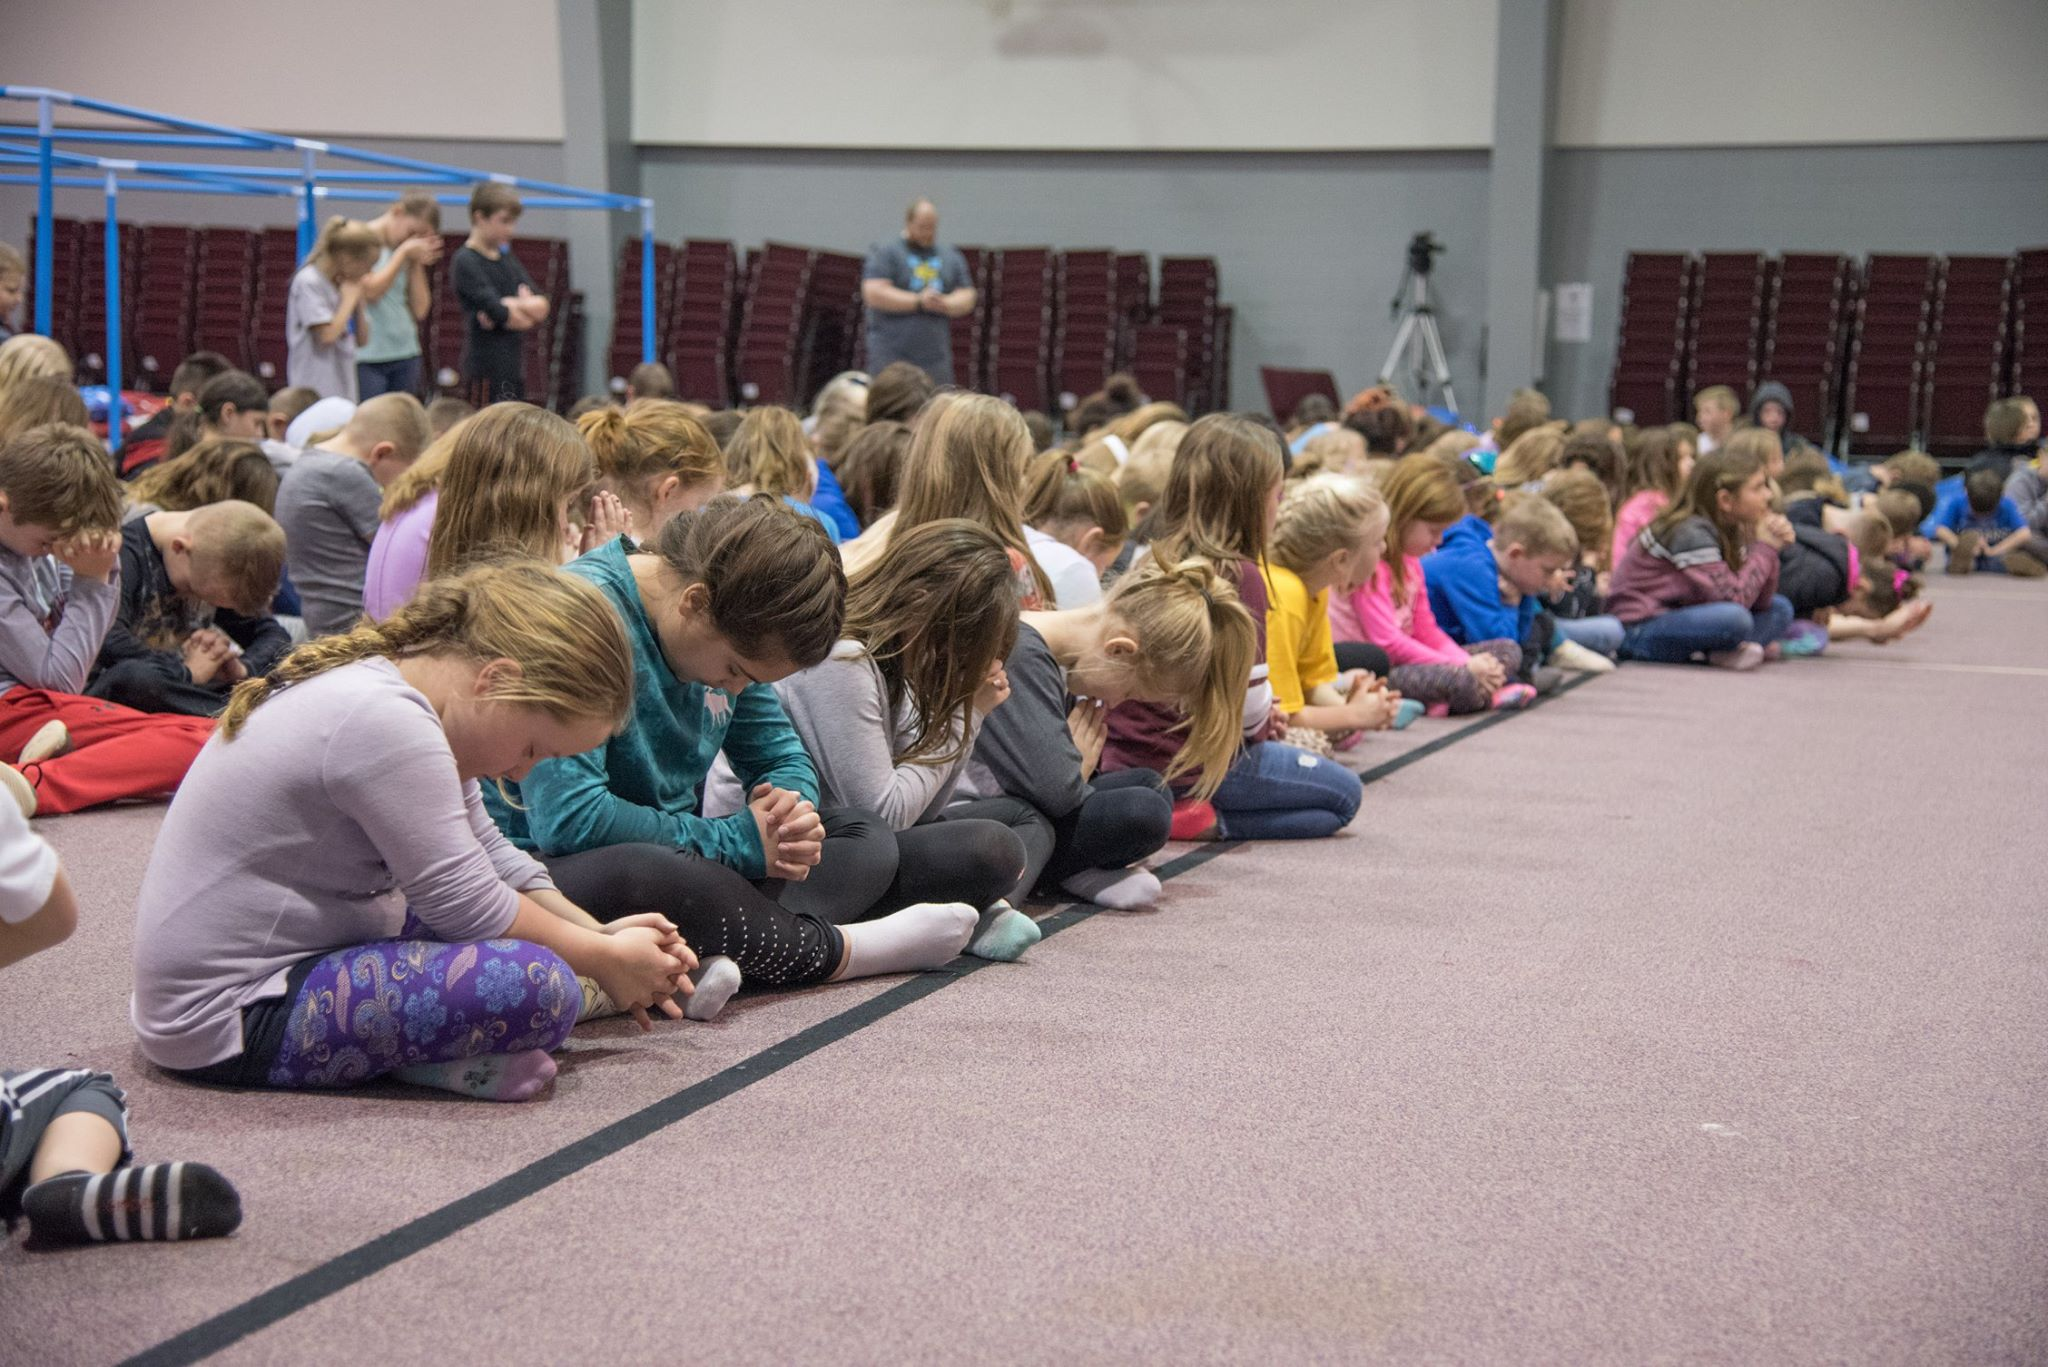 NT Kids - Be a part of shaping the next generation by engaging kids with the Gospel to help them build their faith. Serve directly with children through Bible stories, songs and group activities or serve behind the scenes to provide the best experience possible for both kids and parents.